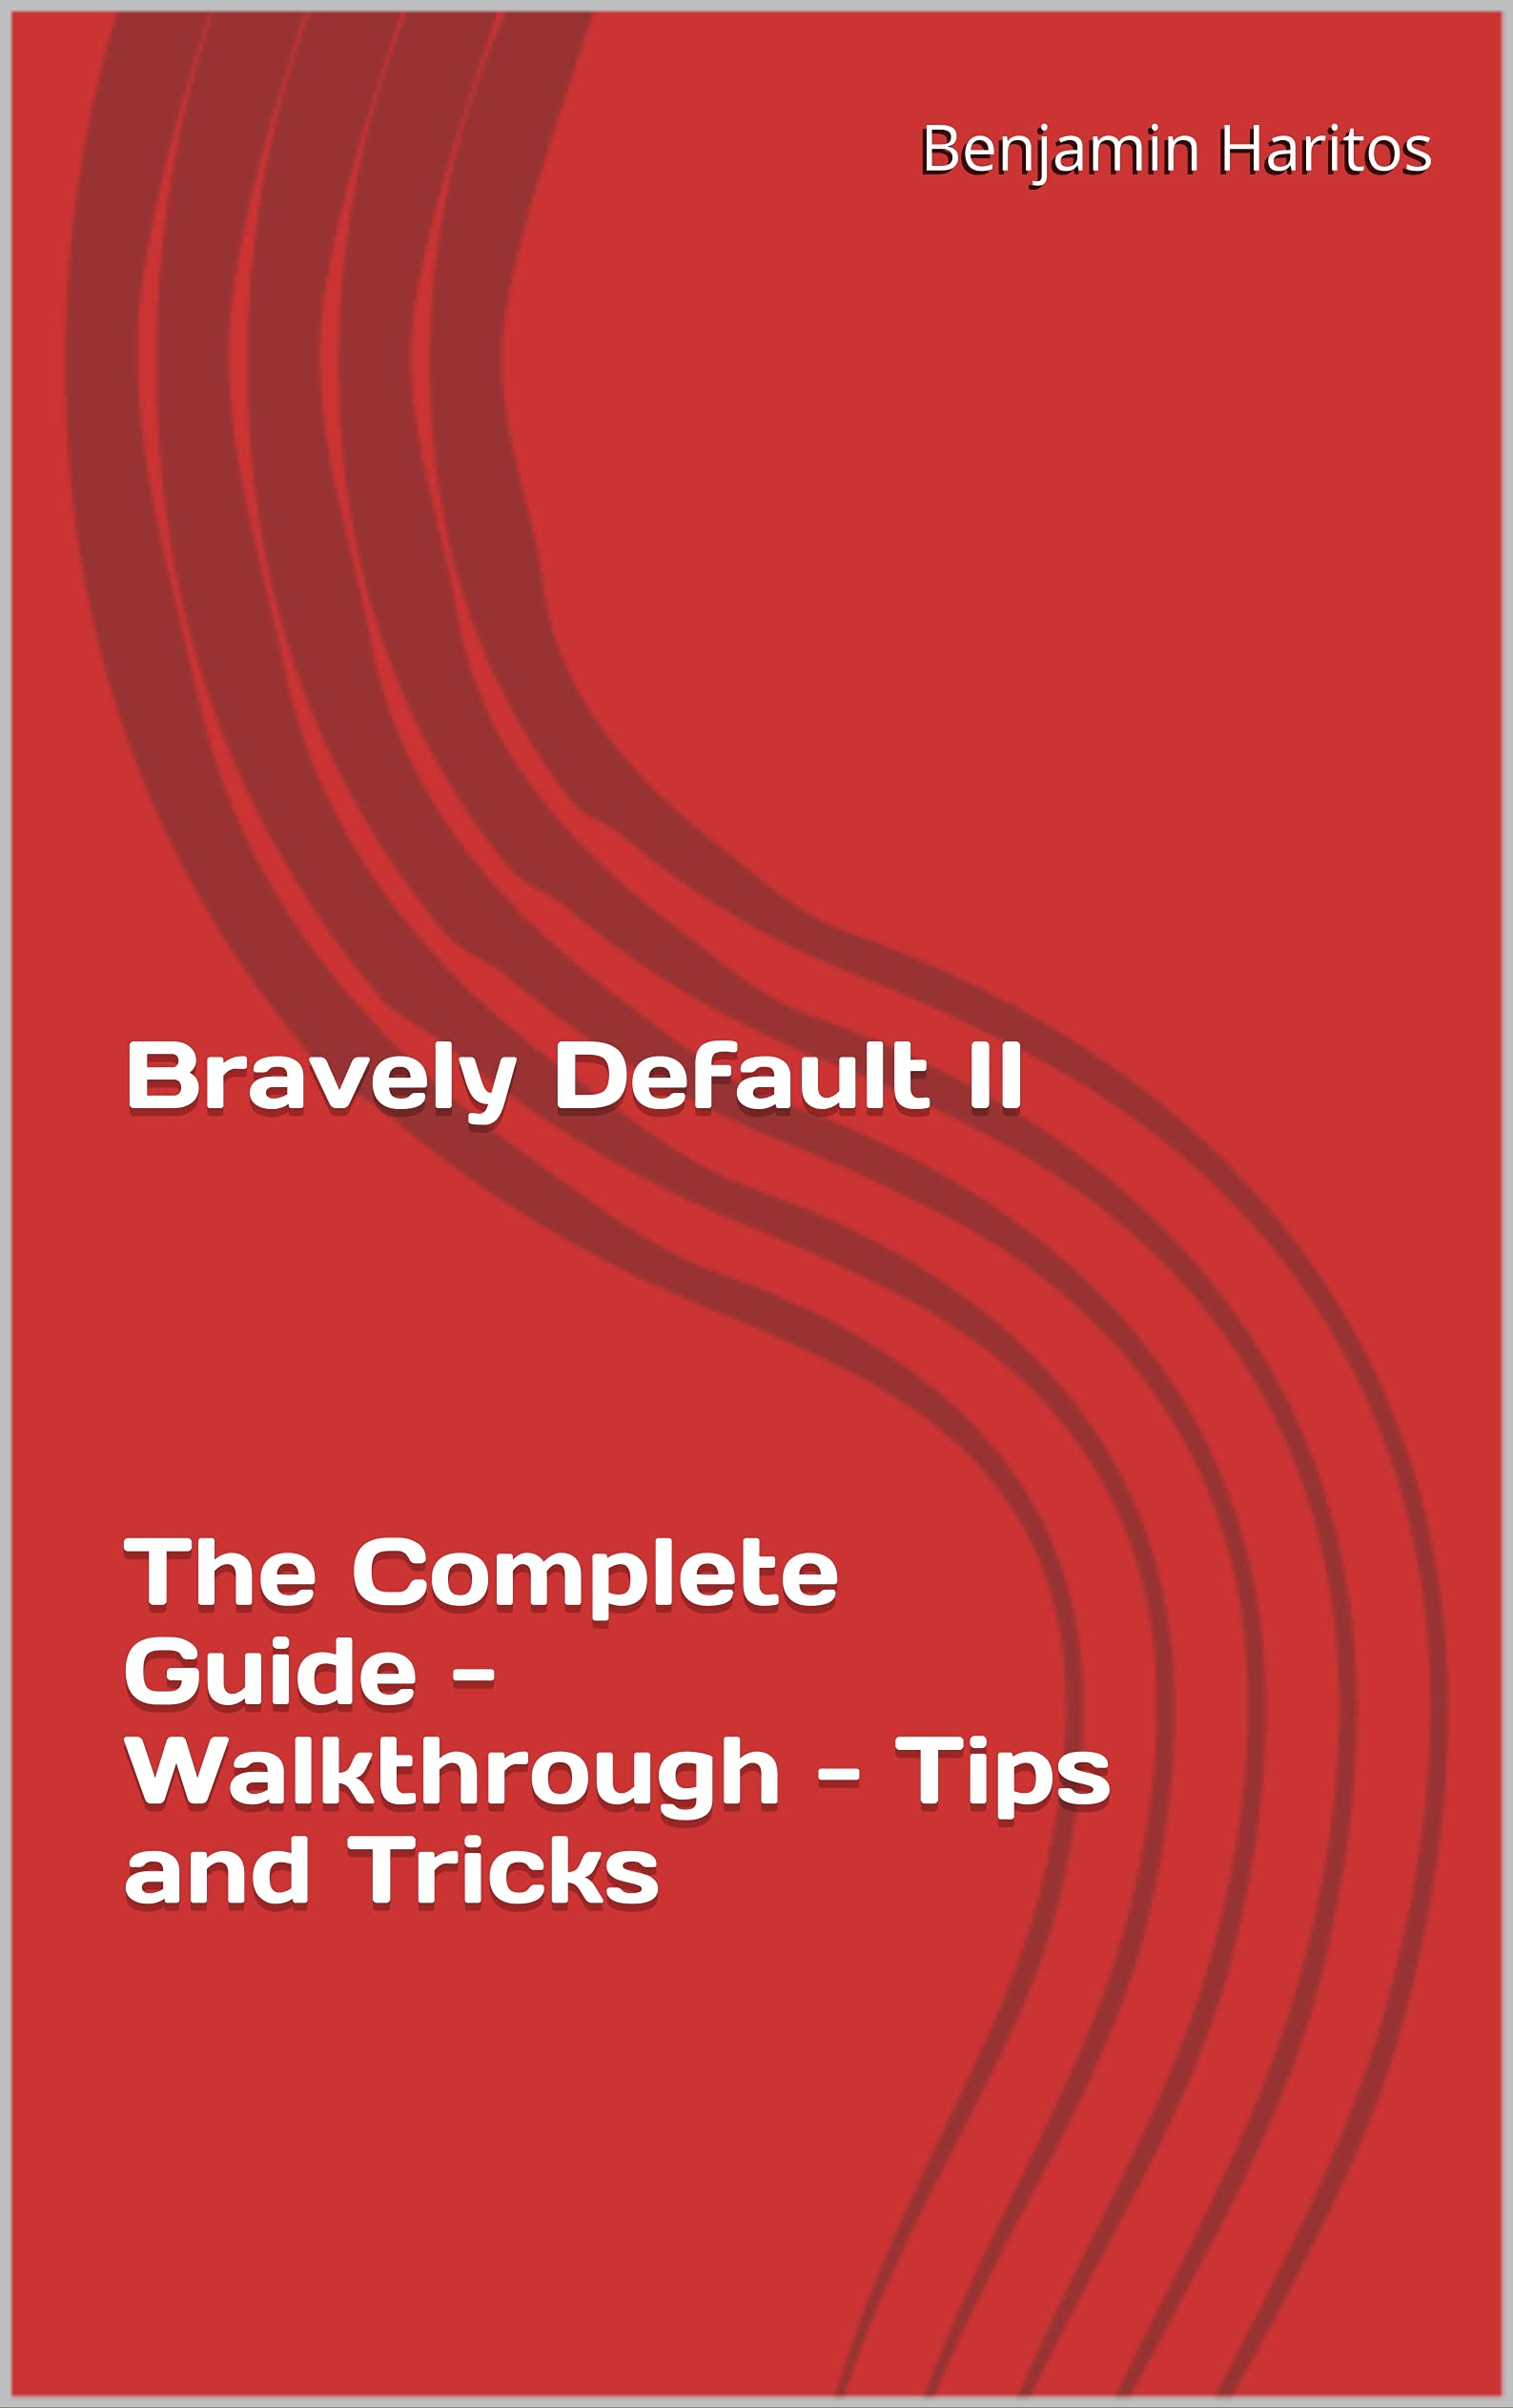 Bravely Default II: The Complete Guide - Walkthrough - Tips and Tricks